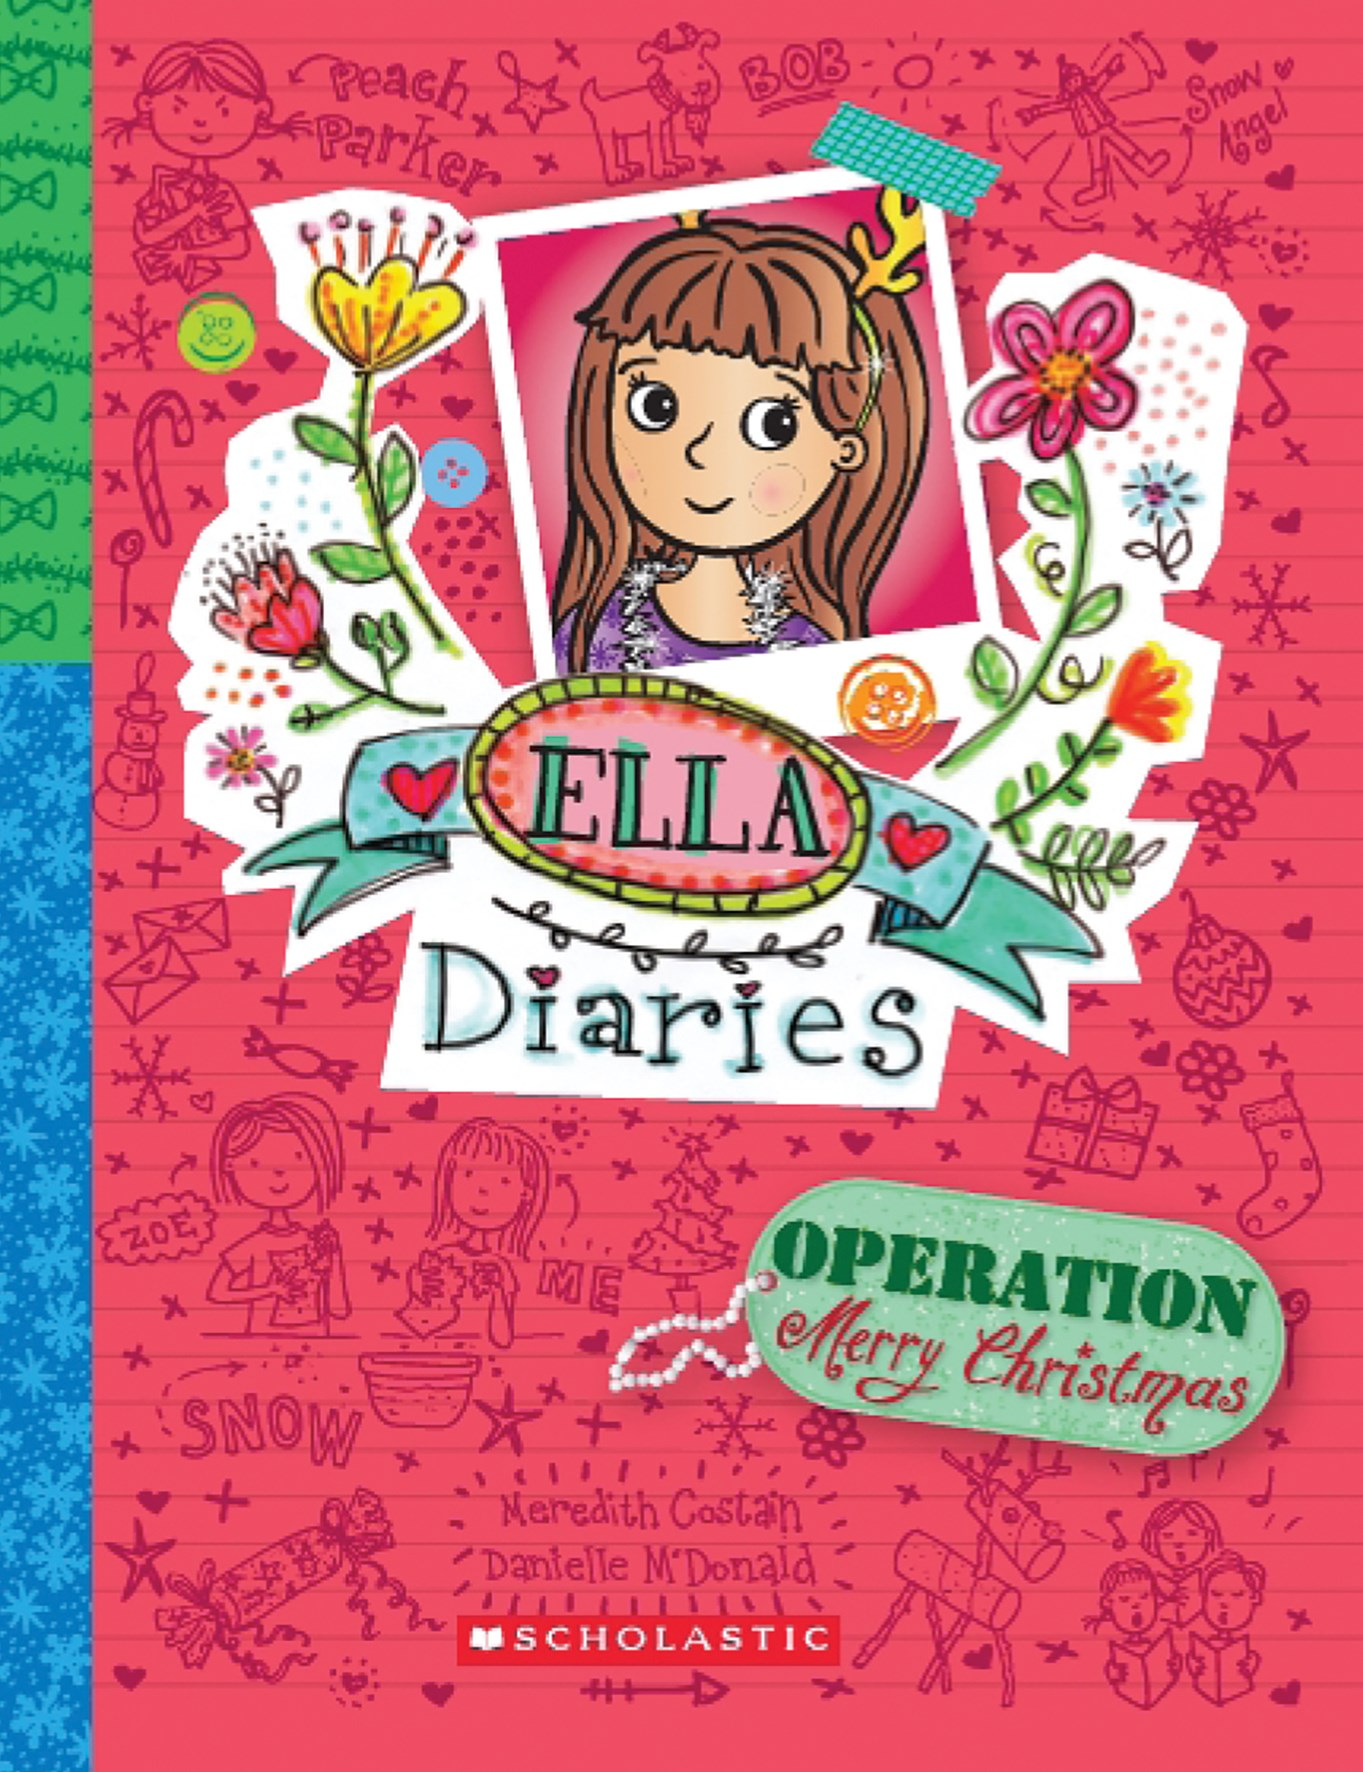 Operation Merry Christmas (Ella Diaries Book 9)